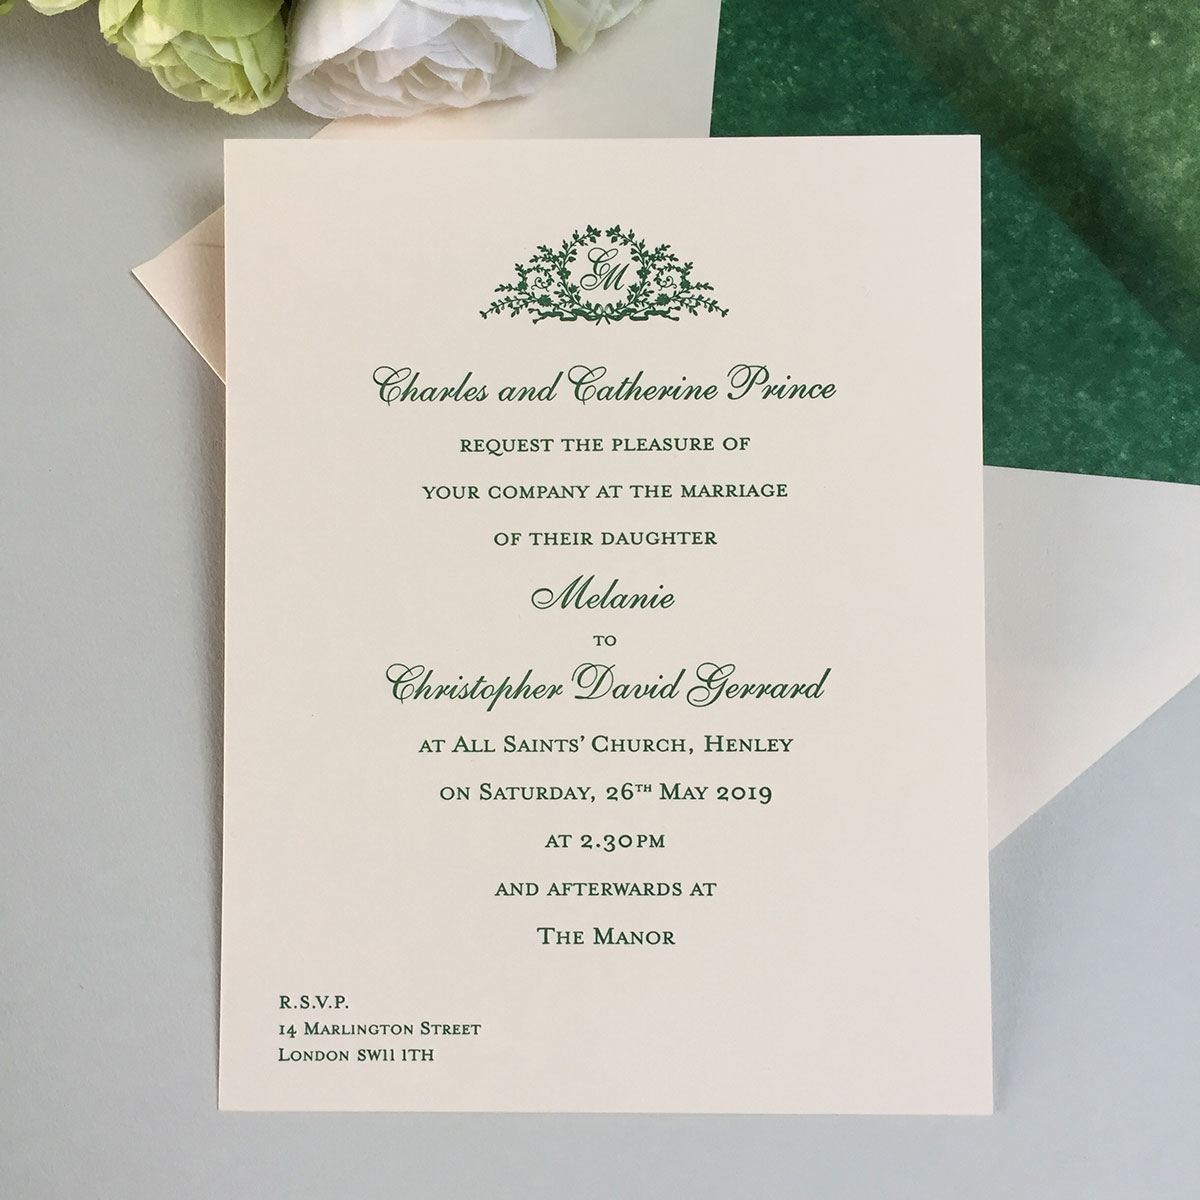 melanie wedding invitations